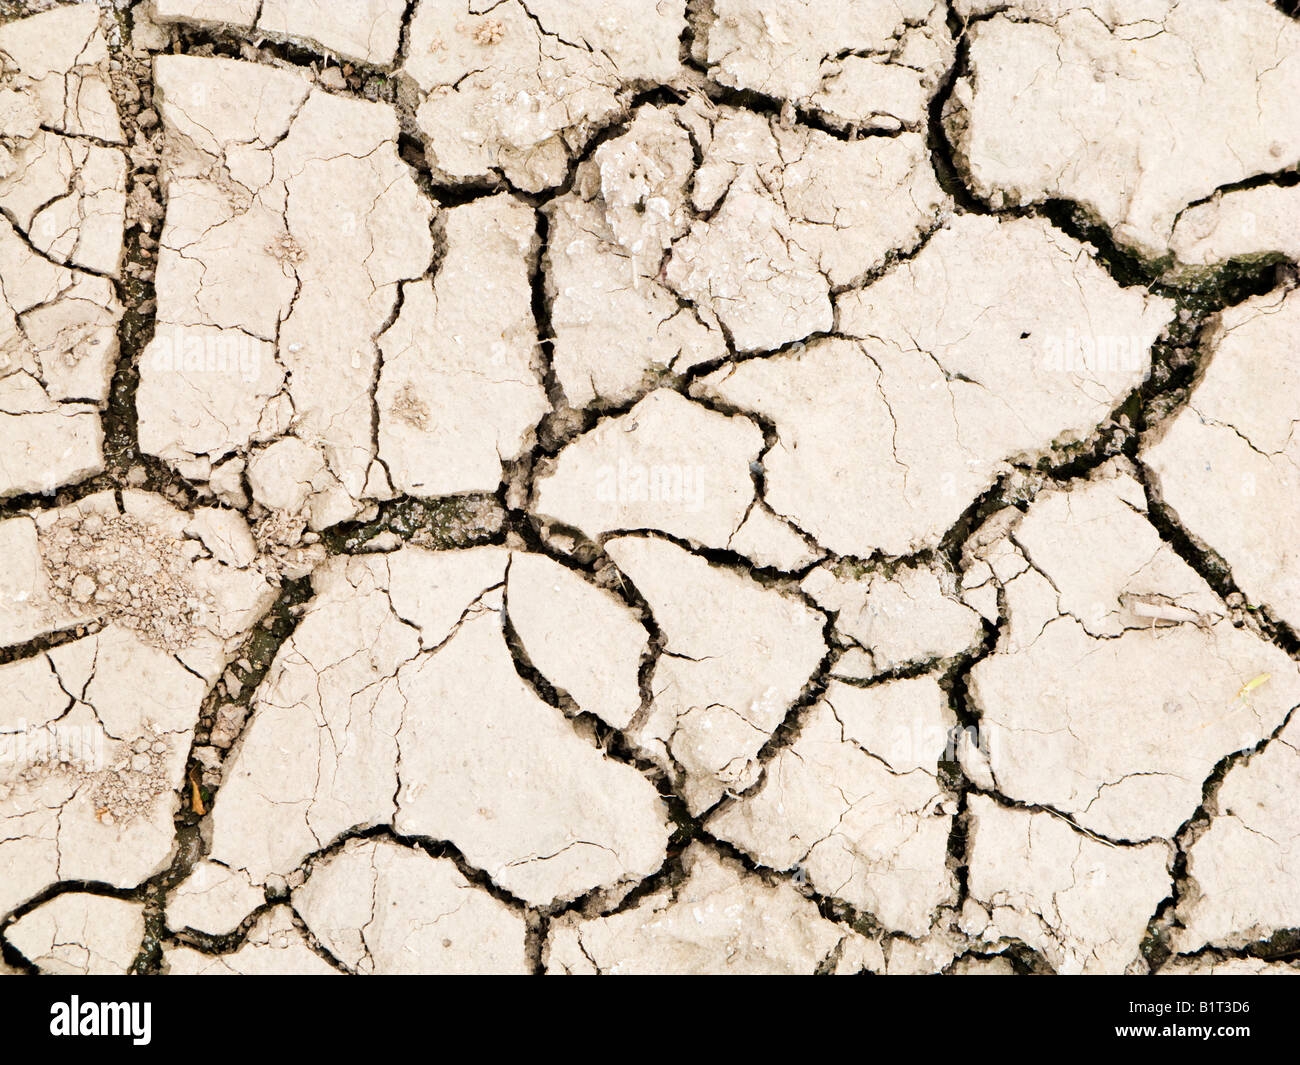 Cracked dry earth - Stock Image